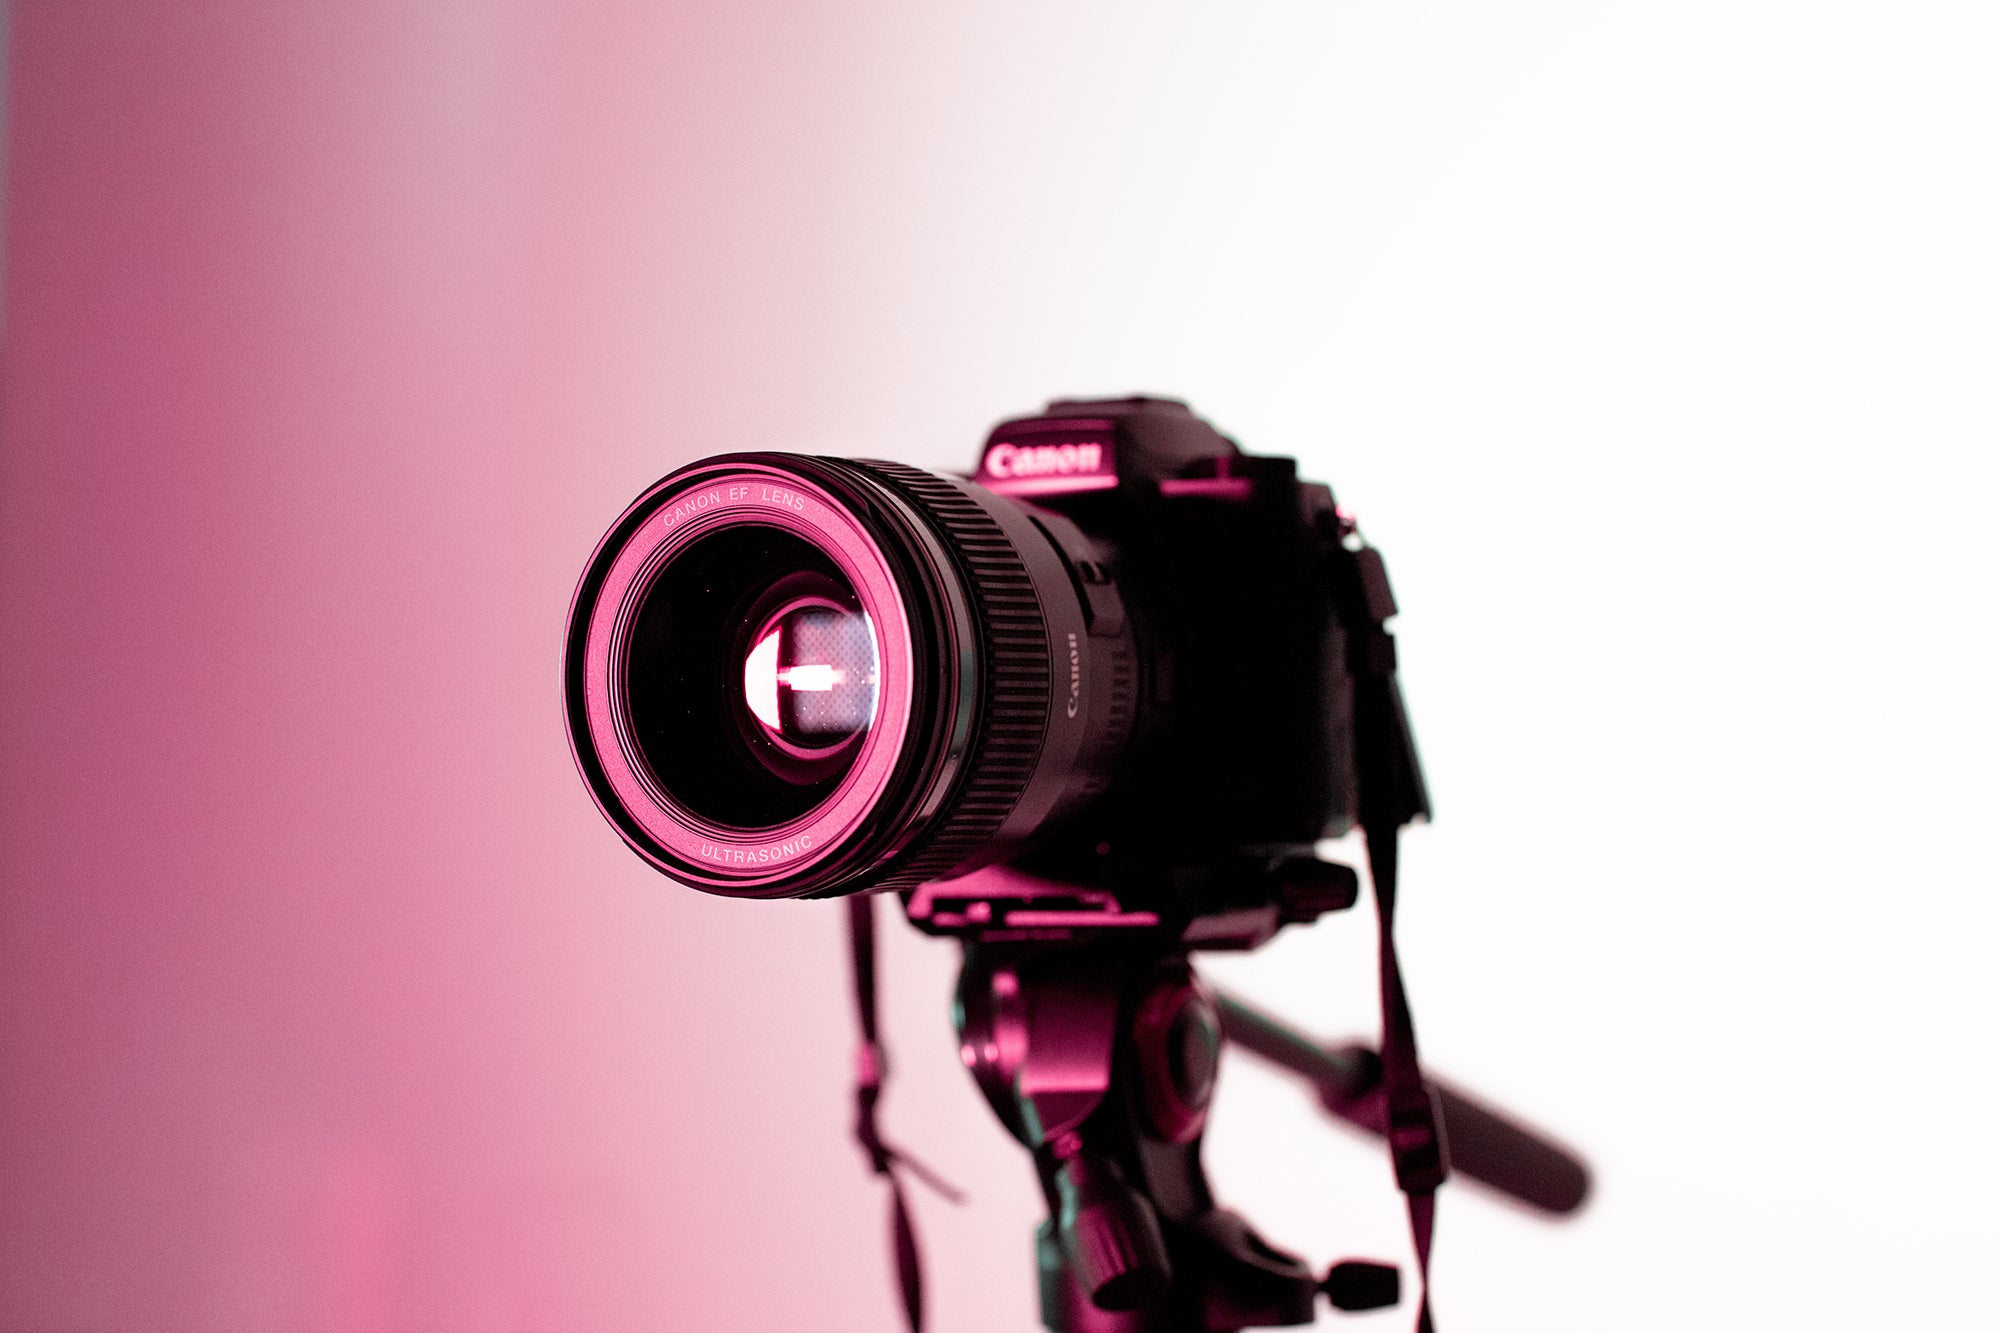 canon camera on a tripod with a pink light